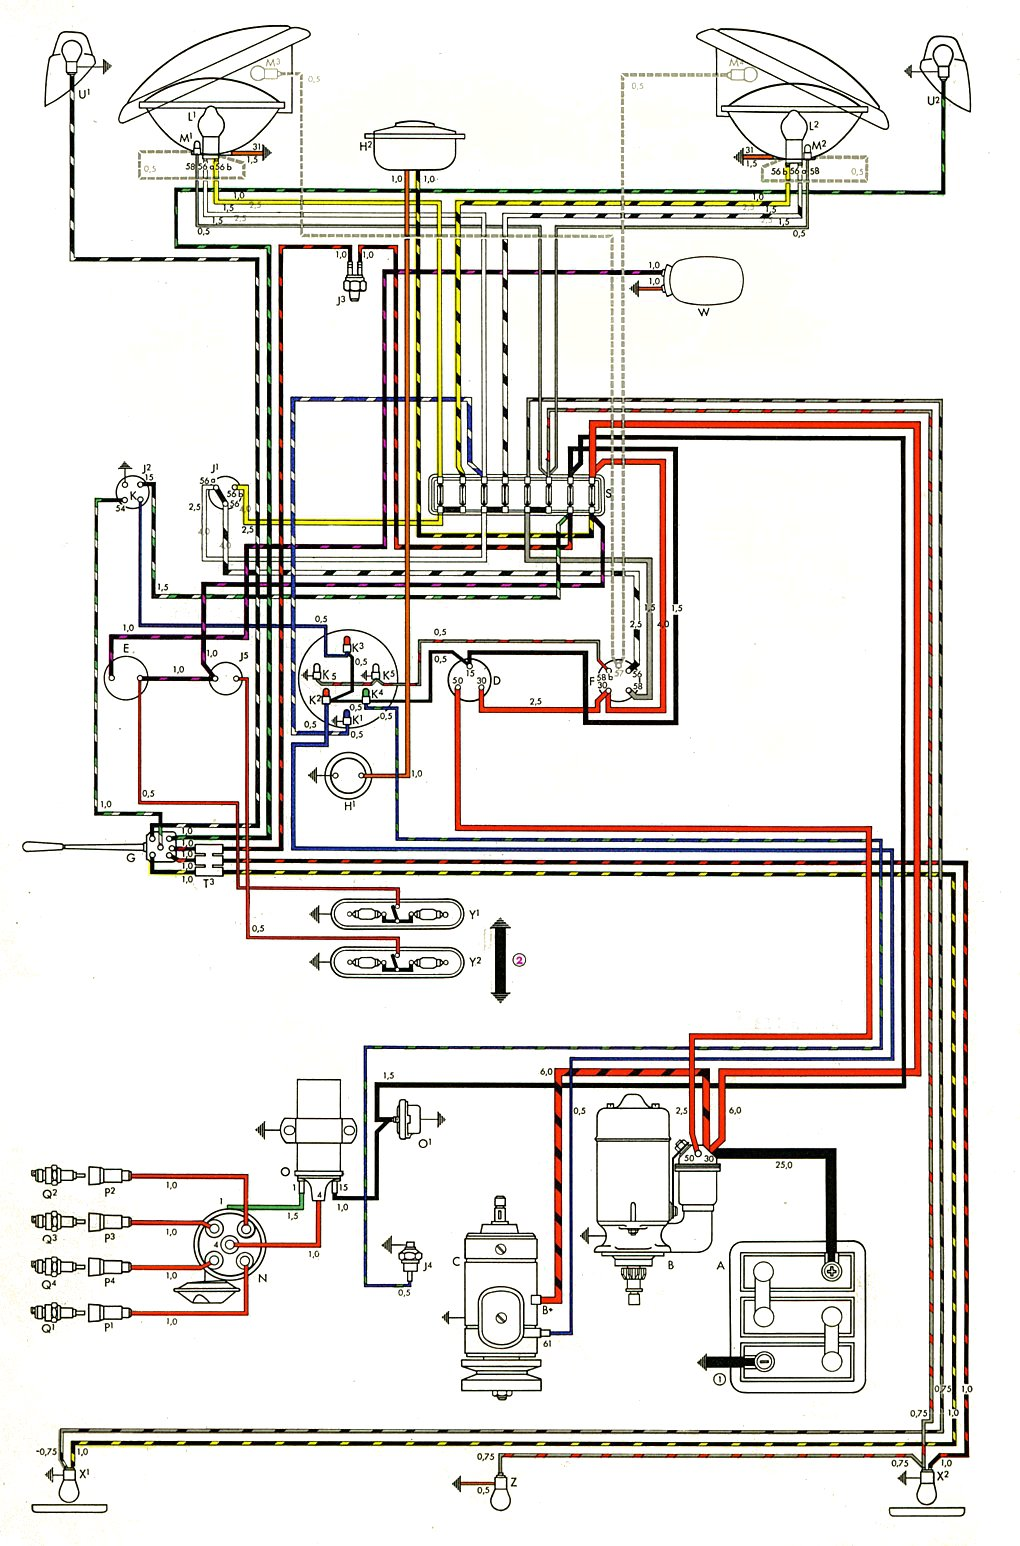 thesamba.com :: type 2 wiring diagrams wiring diagram 1971 honda 750 four